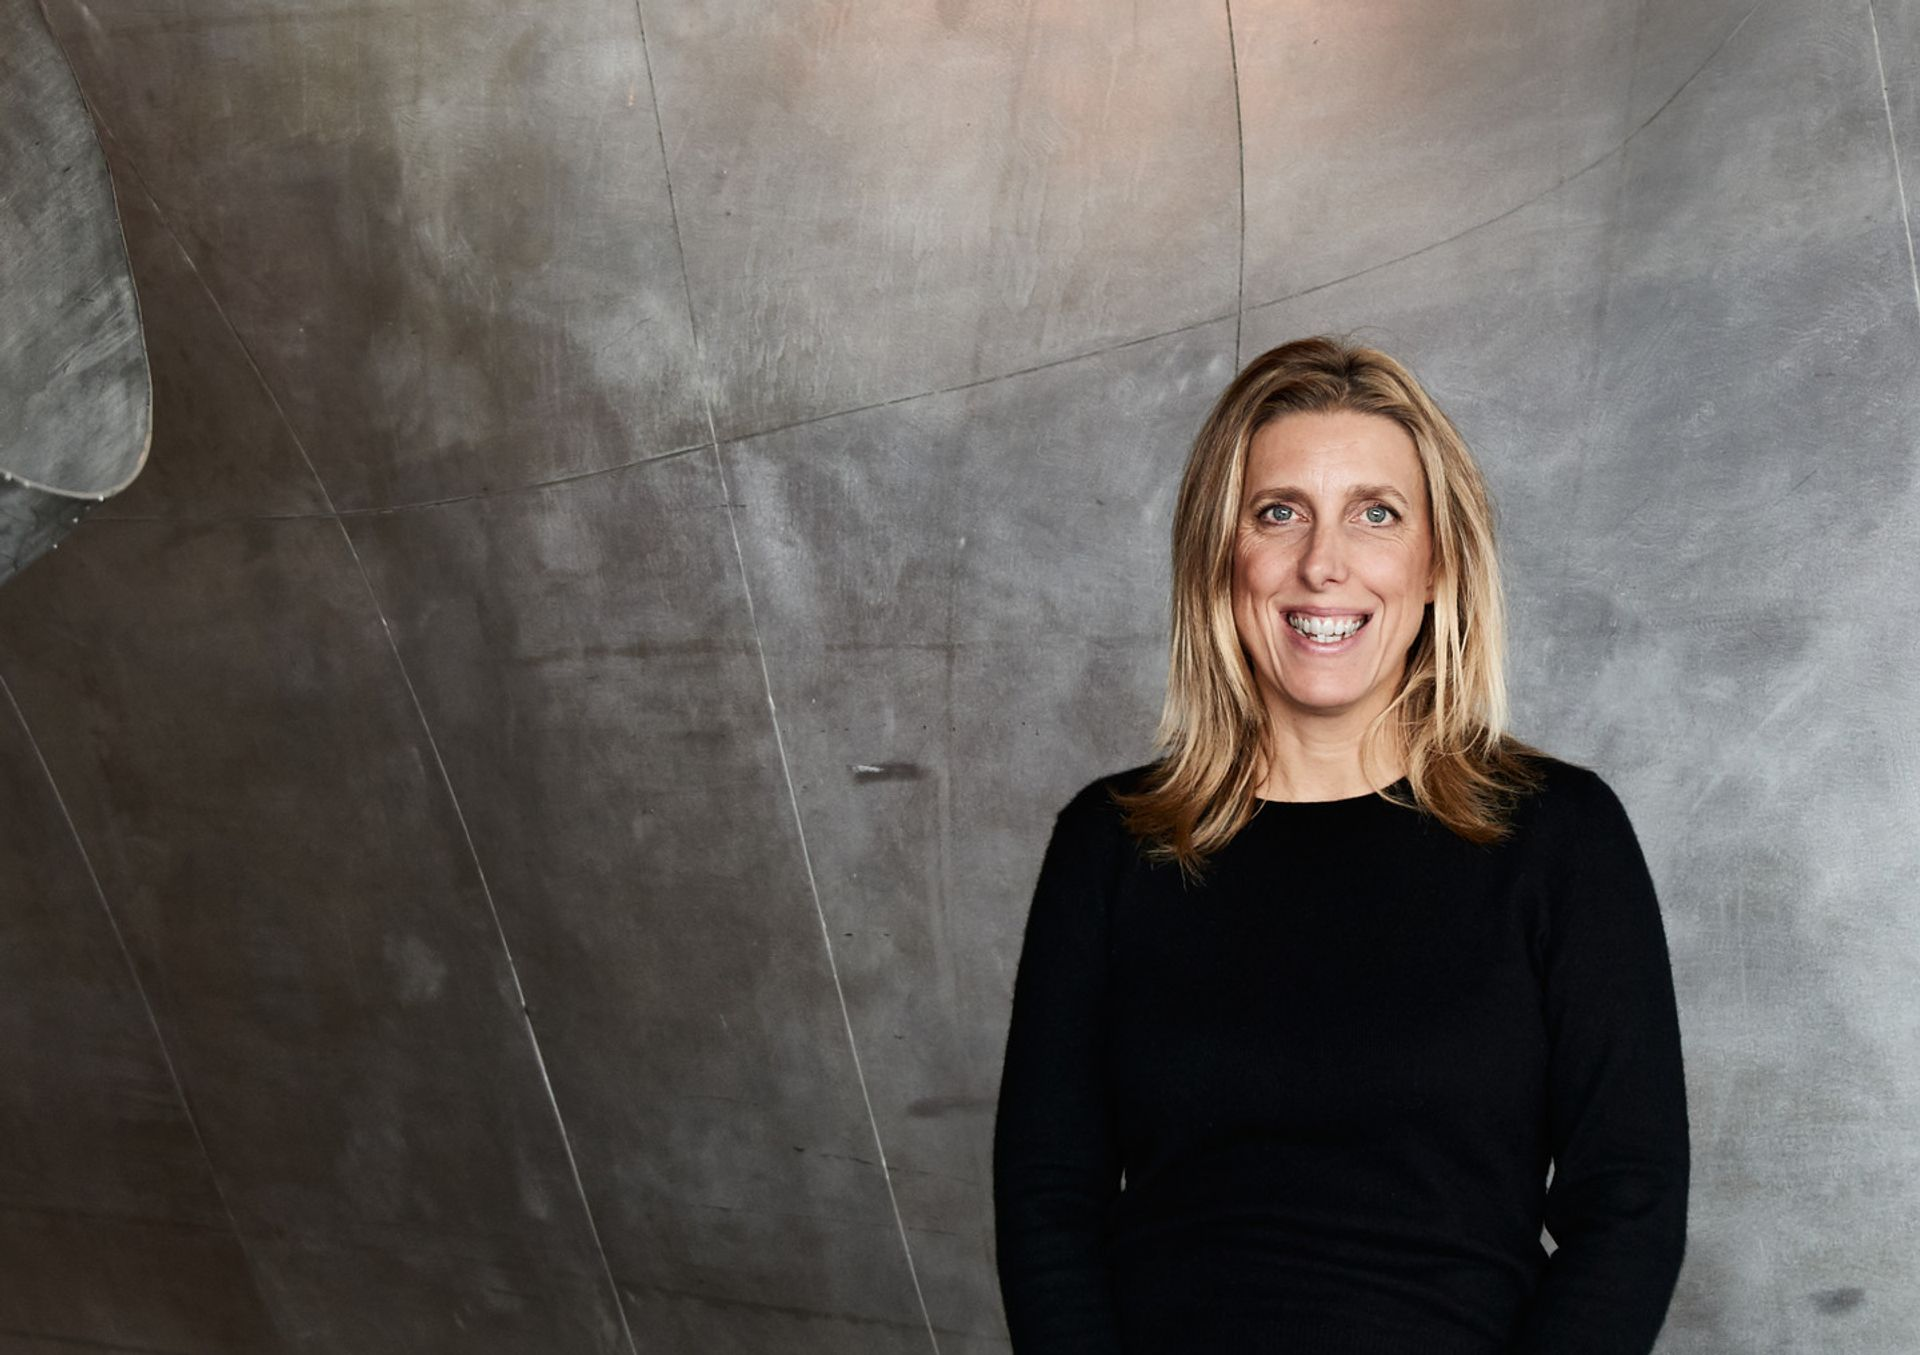 Emma Lavigne will be the first female president of the Palais de Tokyo in Paris © Manuel Braun